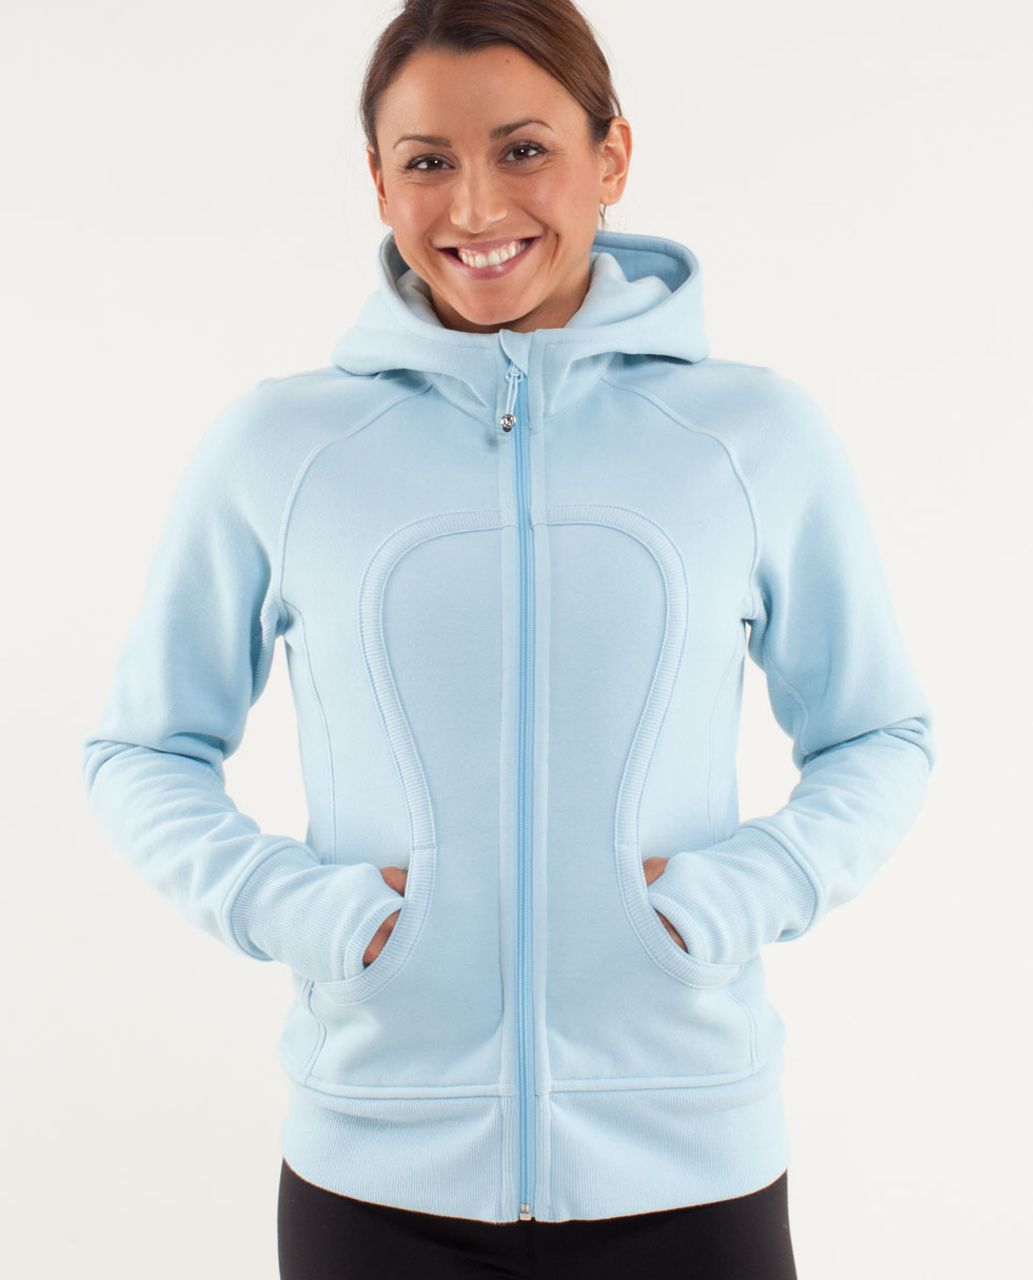 Lululemon Scuba Hoodie - Caspian Blue / Neutral Blush